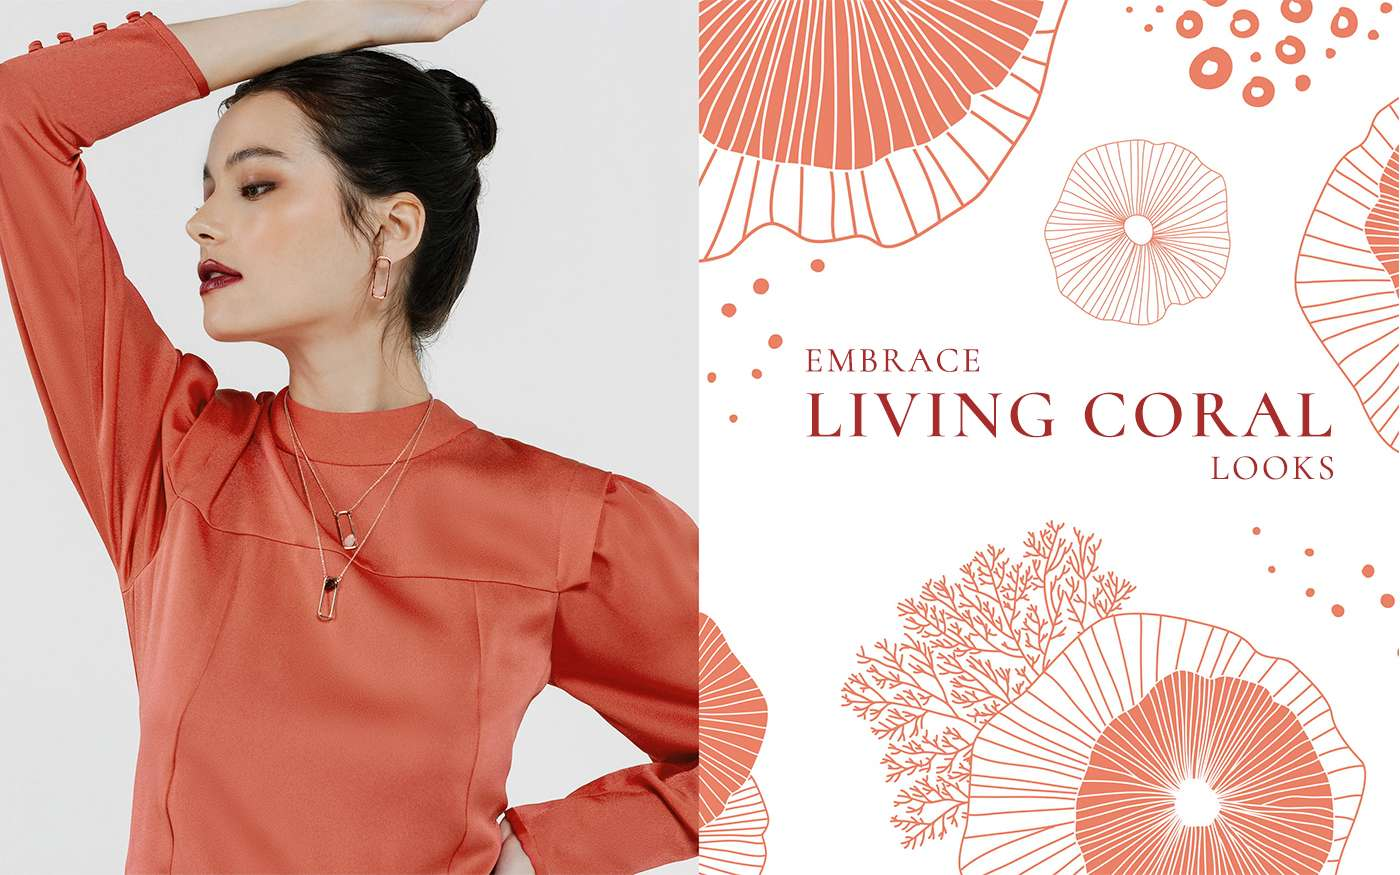 Embrace Living Coral Looks